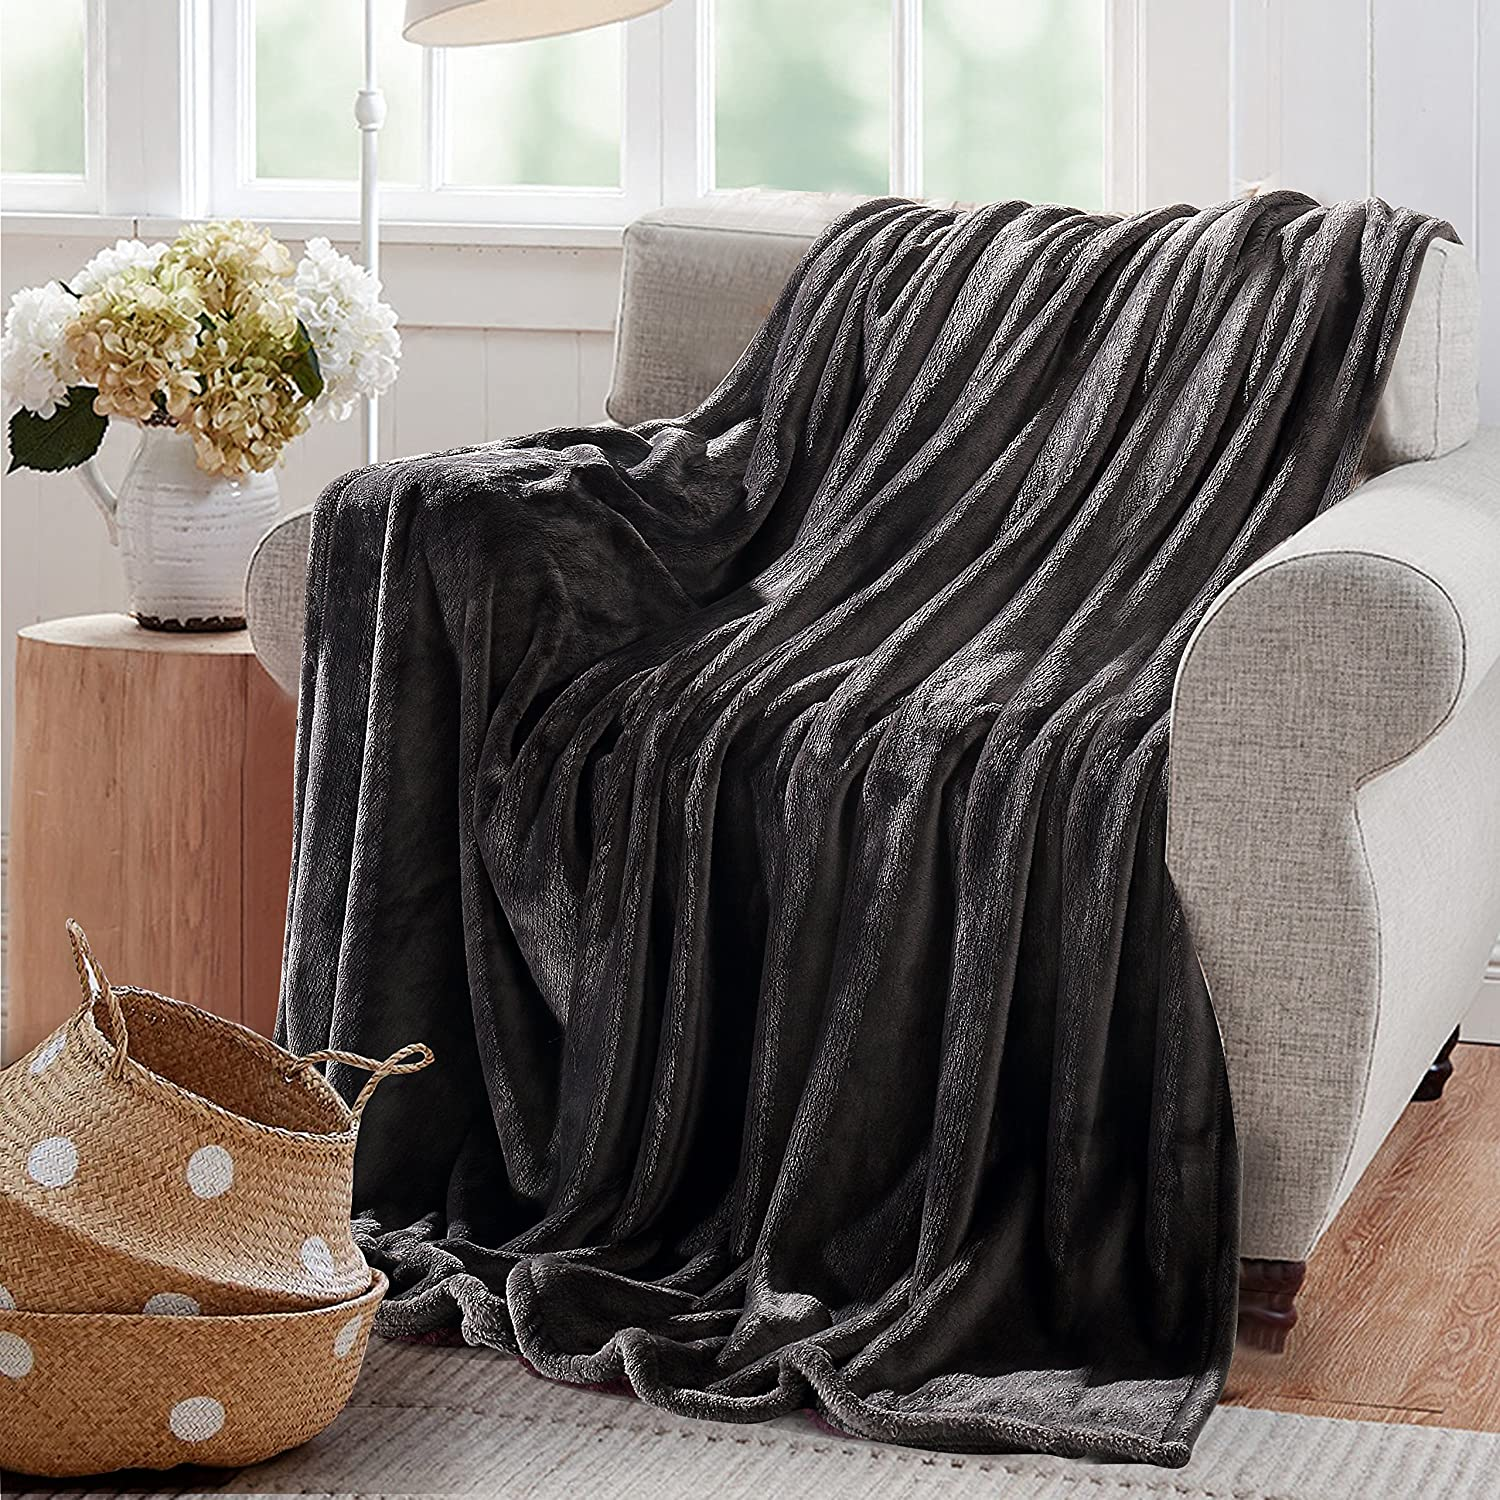 "Reafort Ultra Soft Flannel Fleece All Season Light Weight Living Room/Bedroom Warm Throw Blanket(Dark Grey, King 108""X92"")"